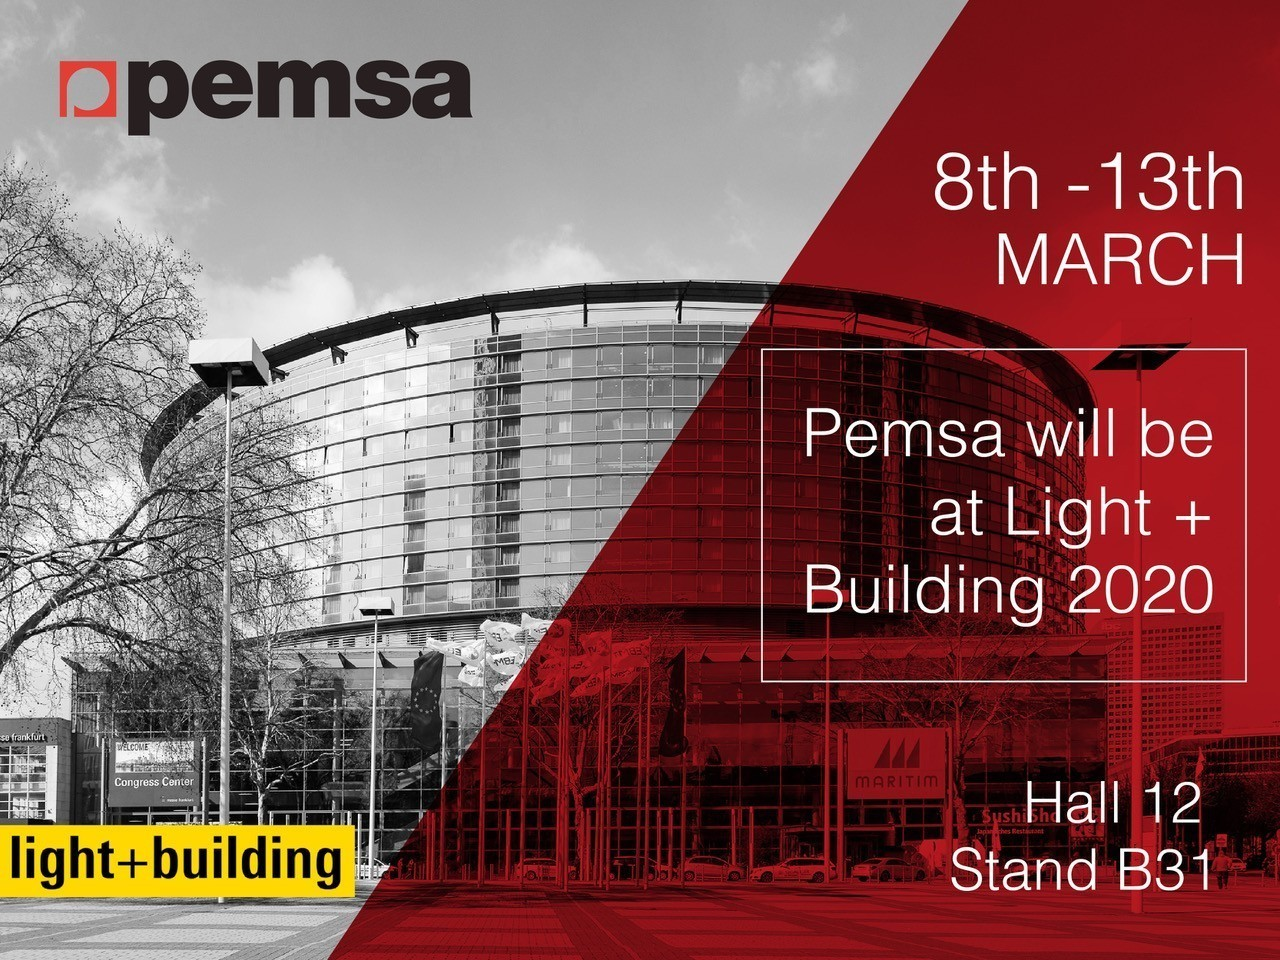 Pemsa will be present at Light + Building 2020